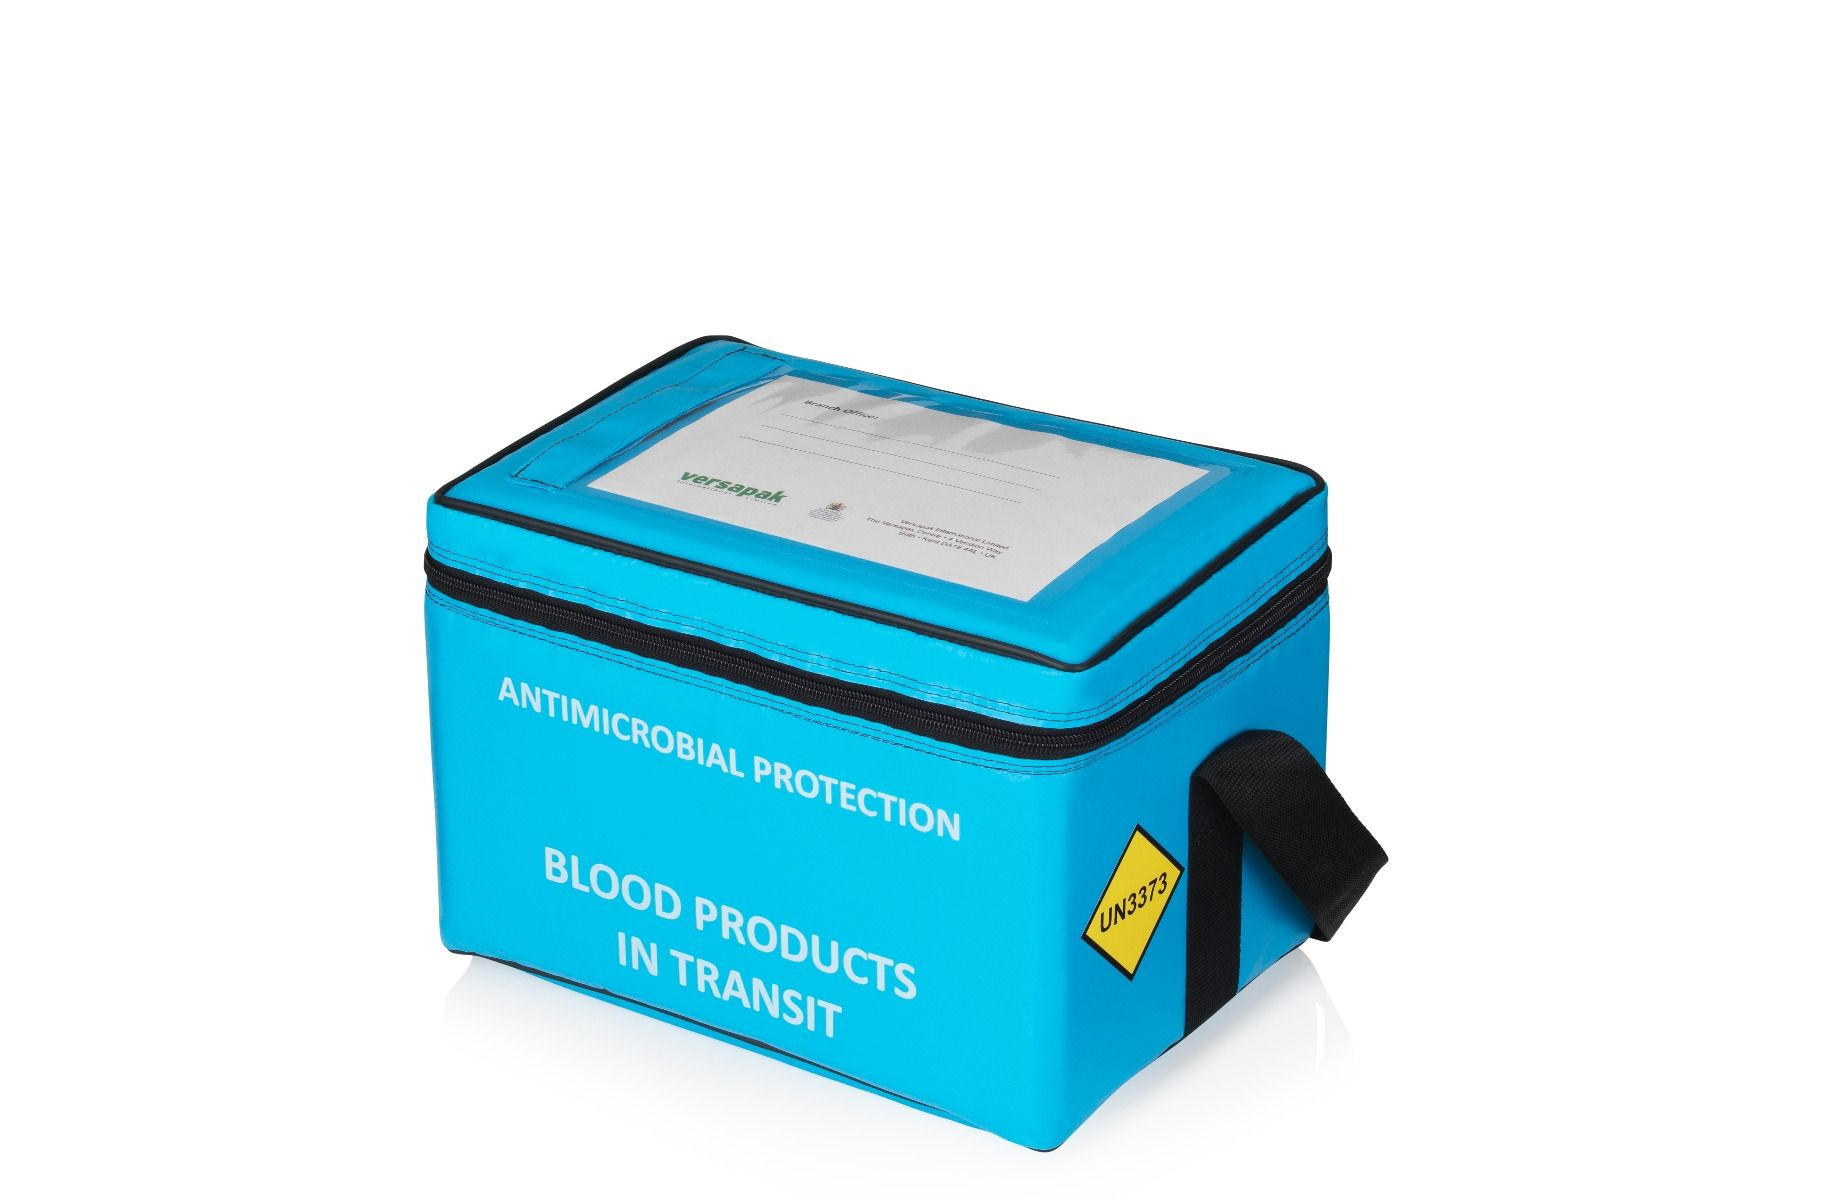 Small Blood-in-Transit Bag - Antimicrobial